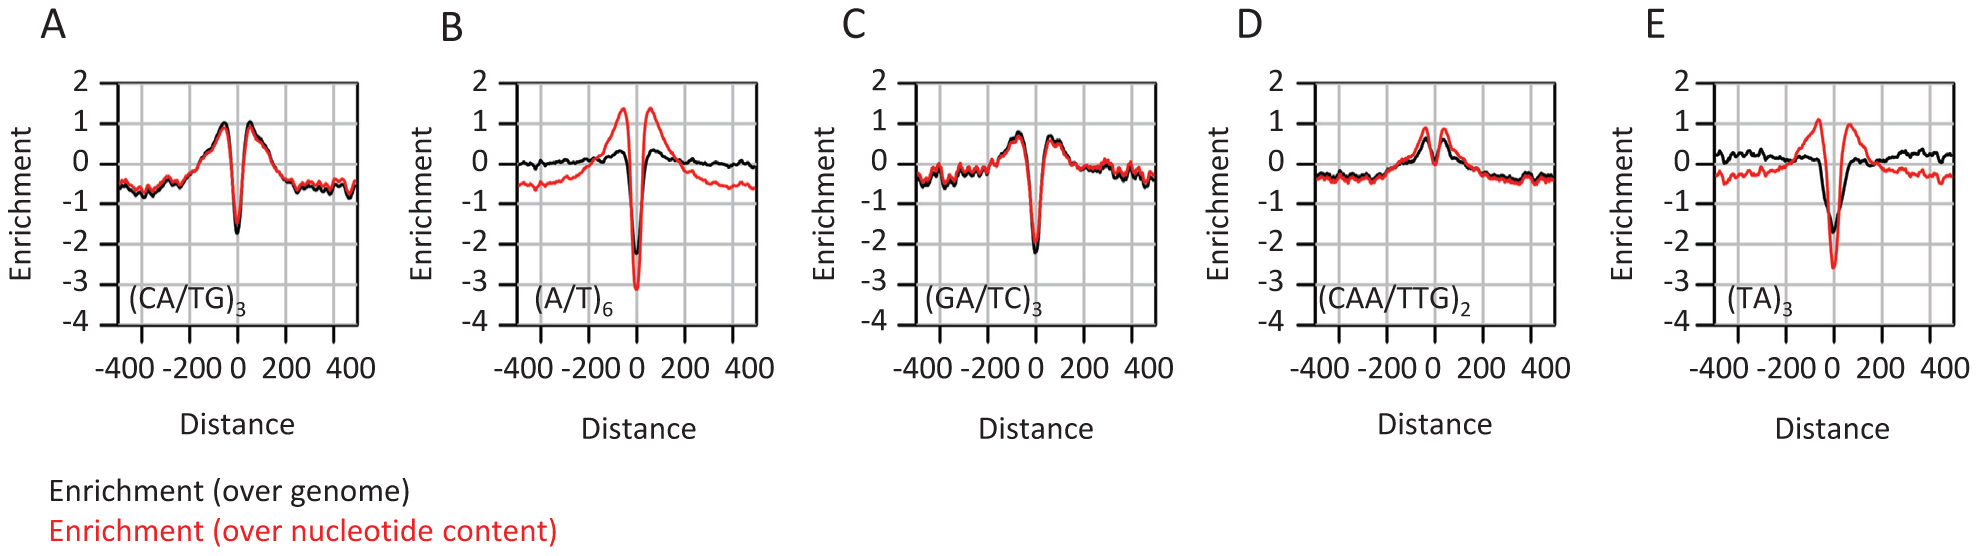 Enrichment of microsatellites in the proximity of conserved elements.